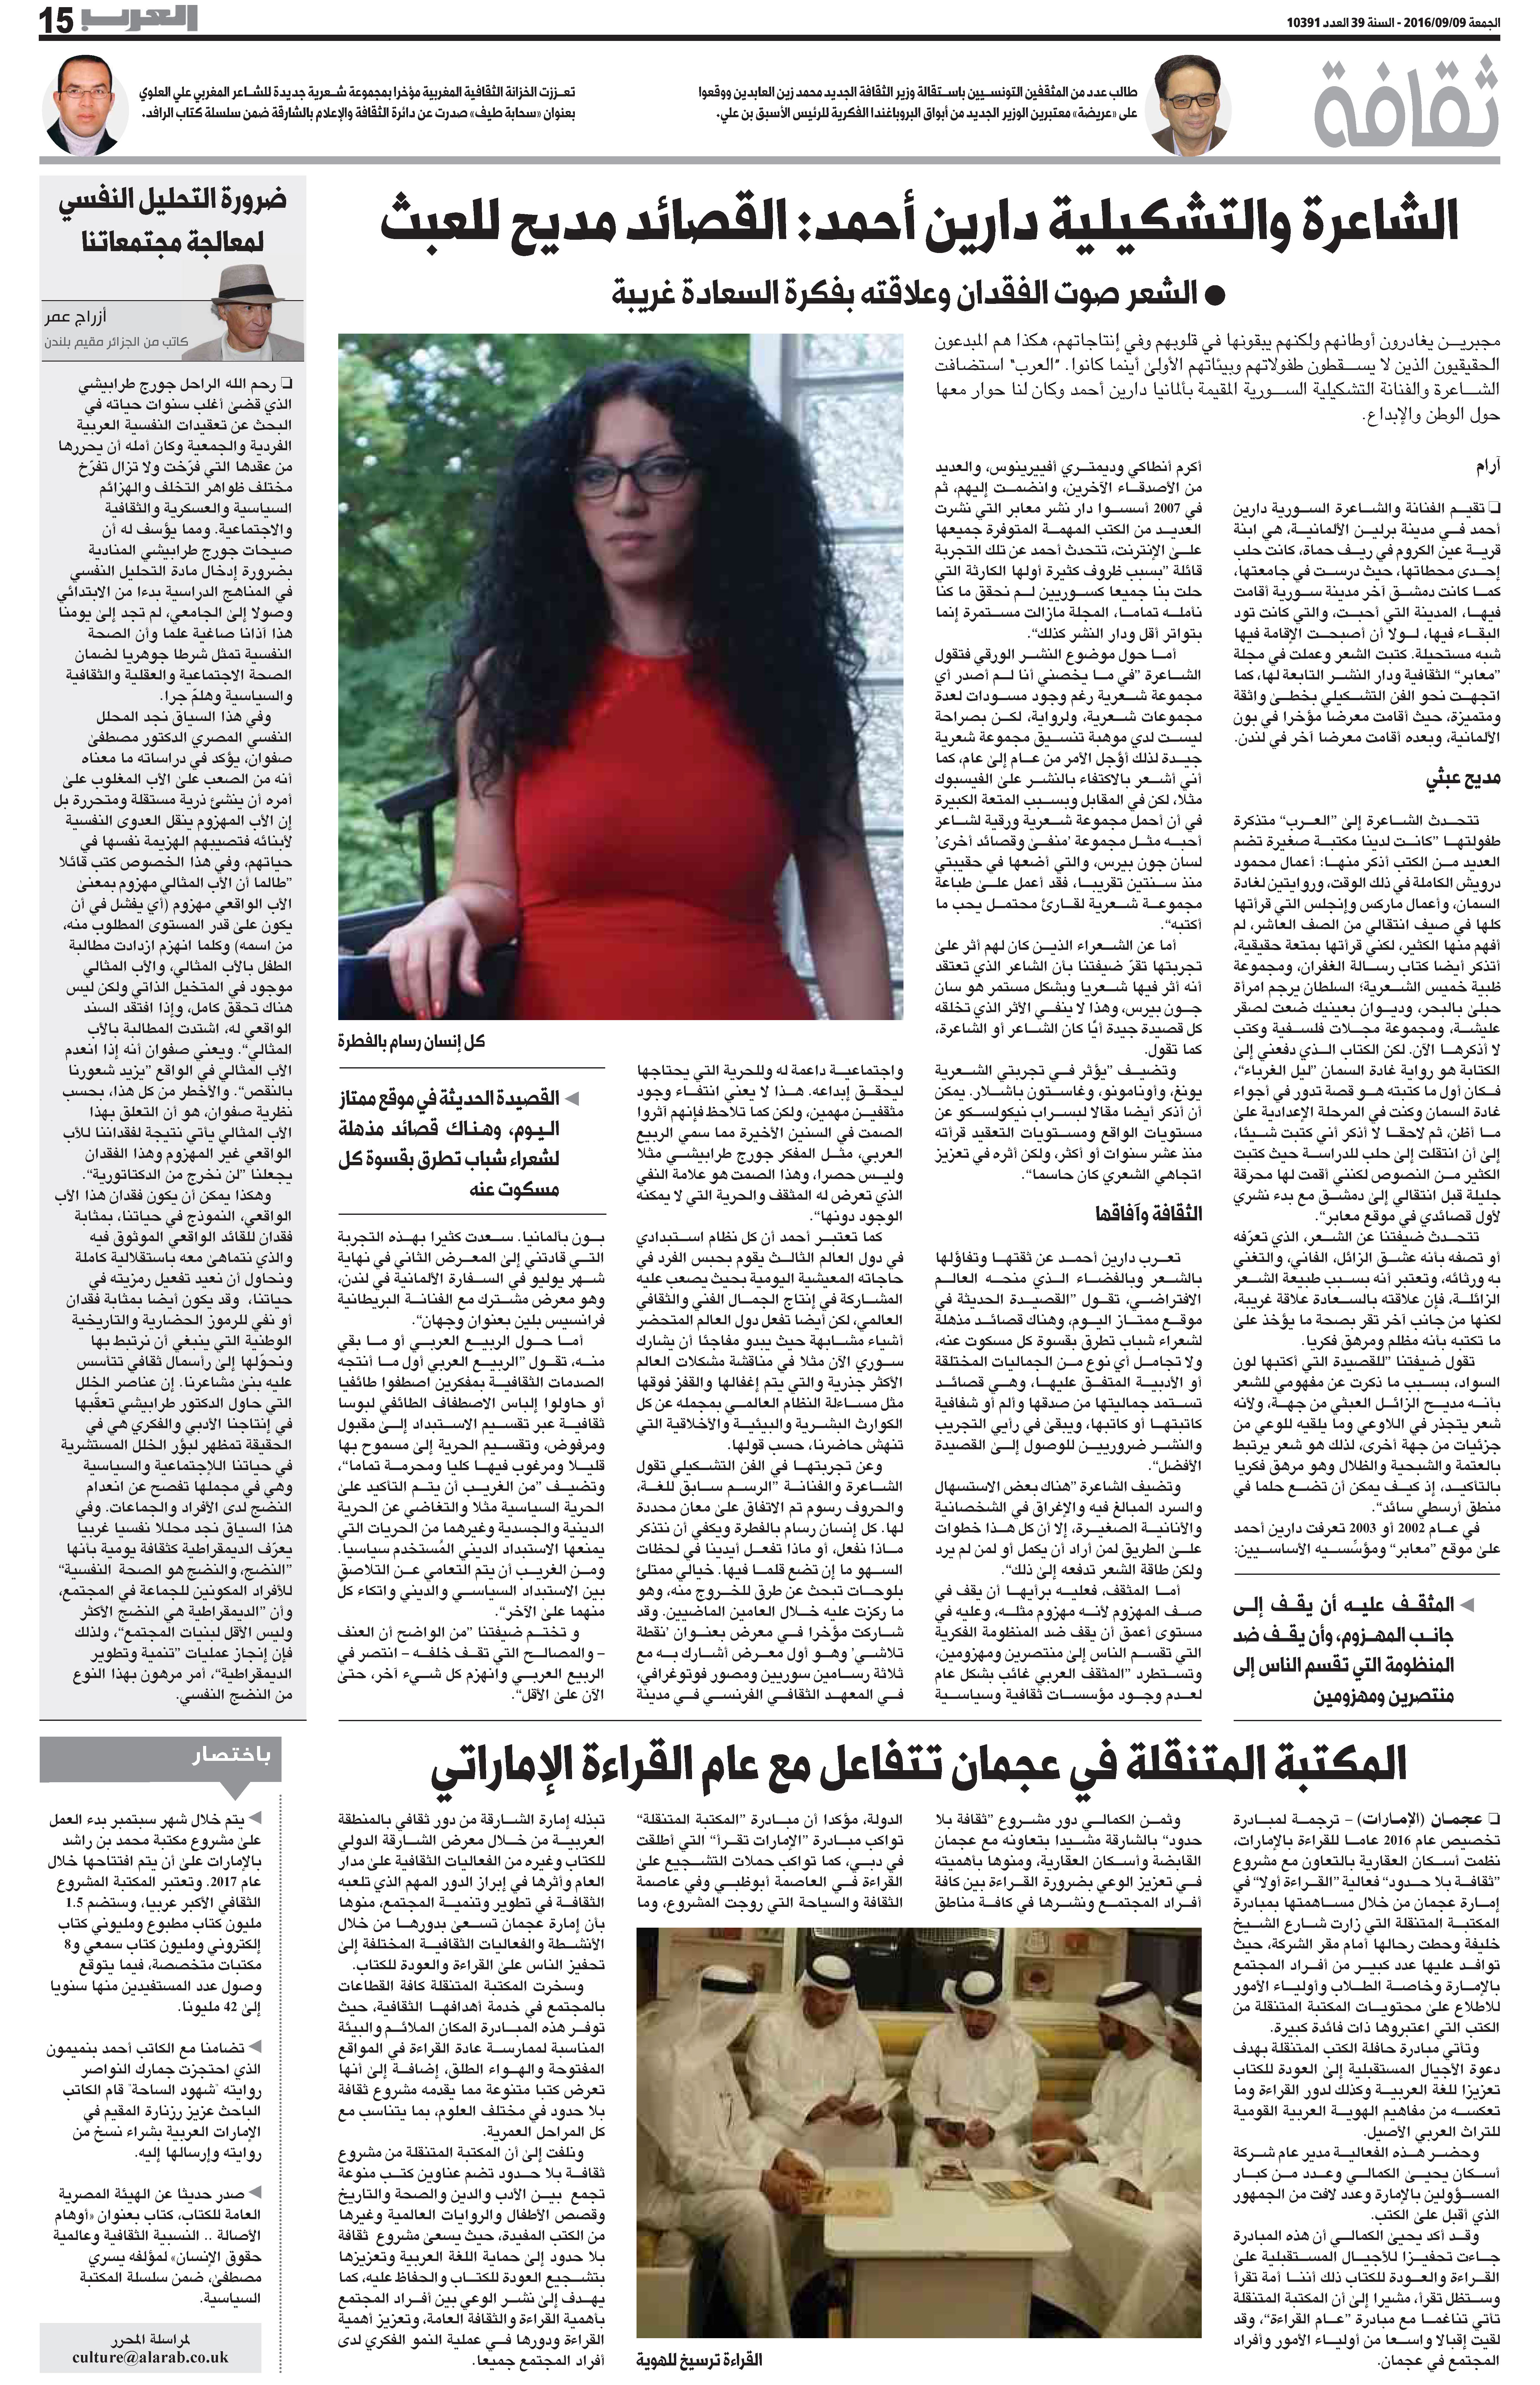 Al-Arab Newspaper on 9th September 2016